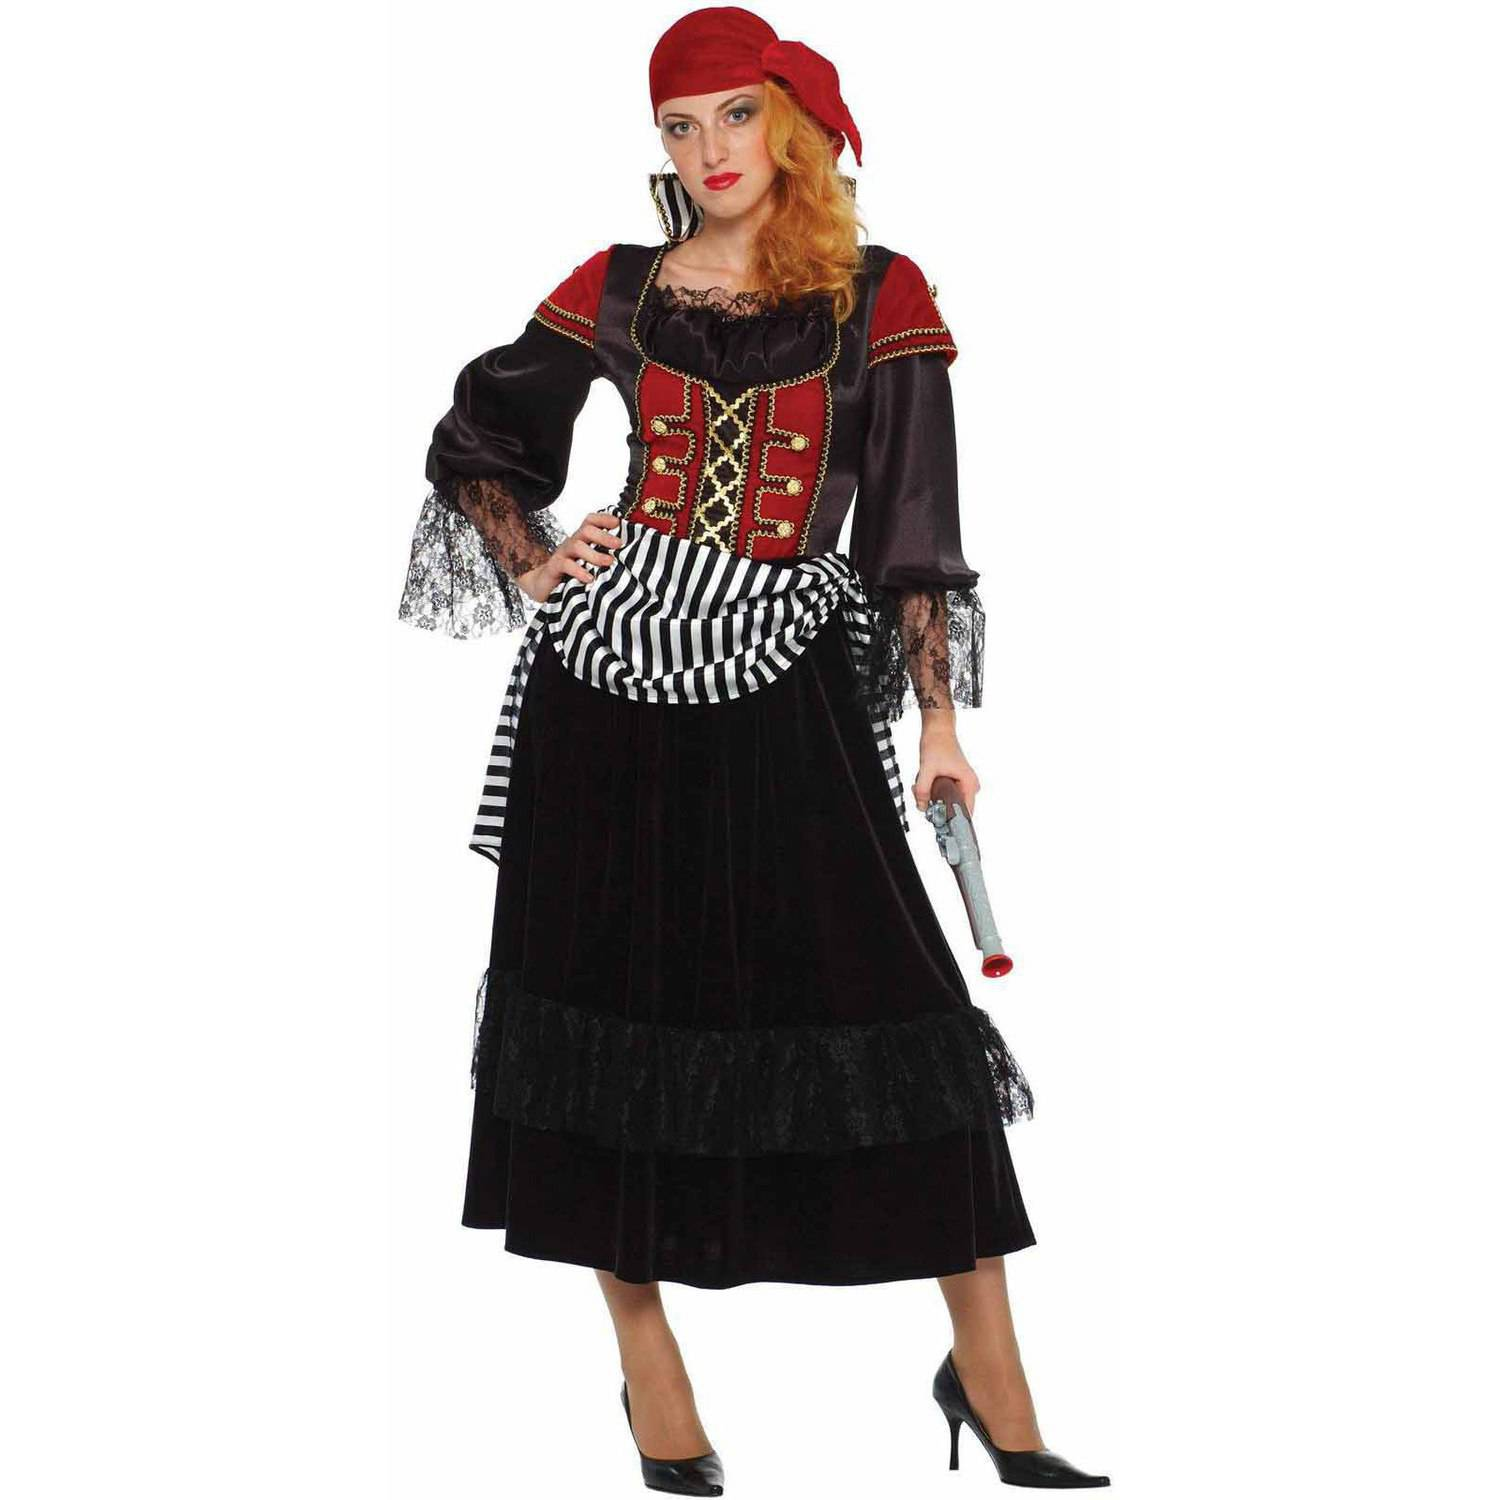 Treasure Pirate Wench Women's Adult Halloween Costume